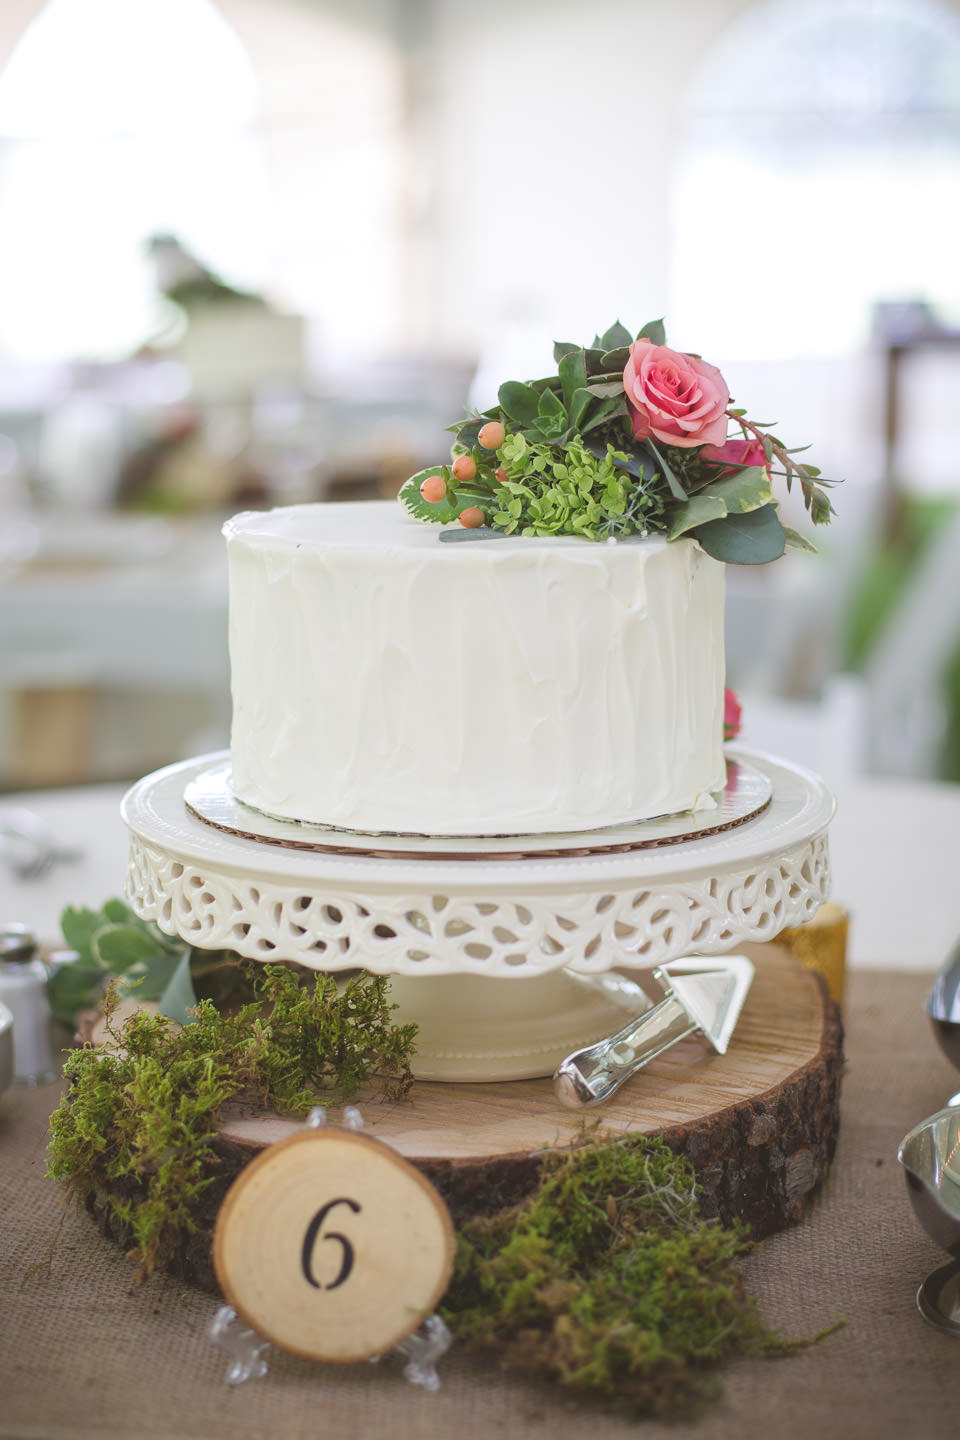 Detroit-South-Lyon-Moose-Ridge-Wedding-Photographers-Reception-Cake